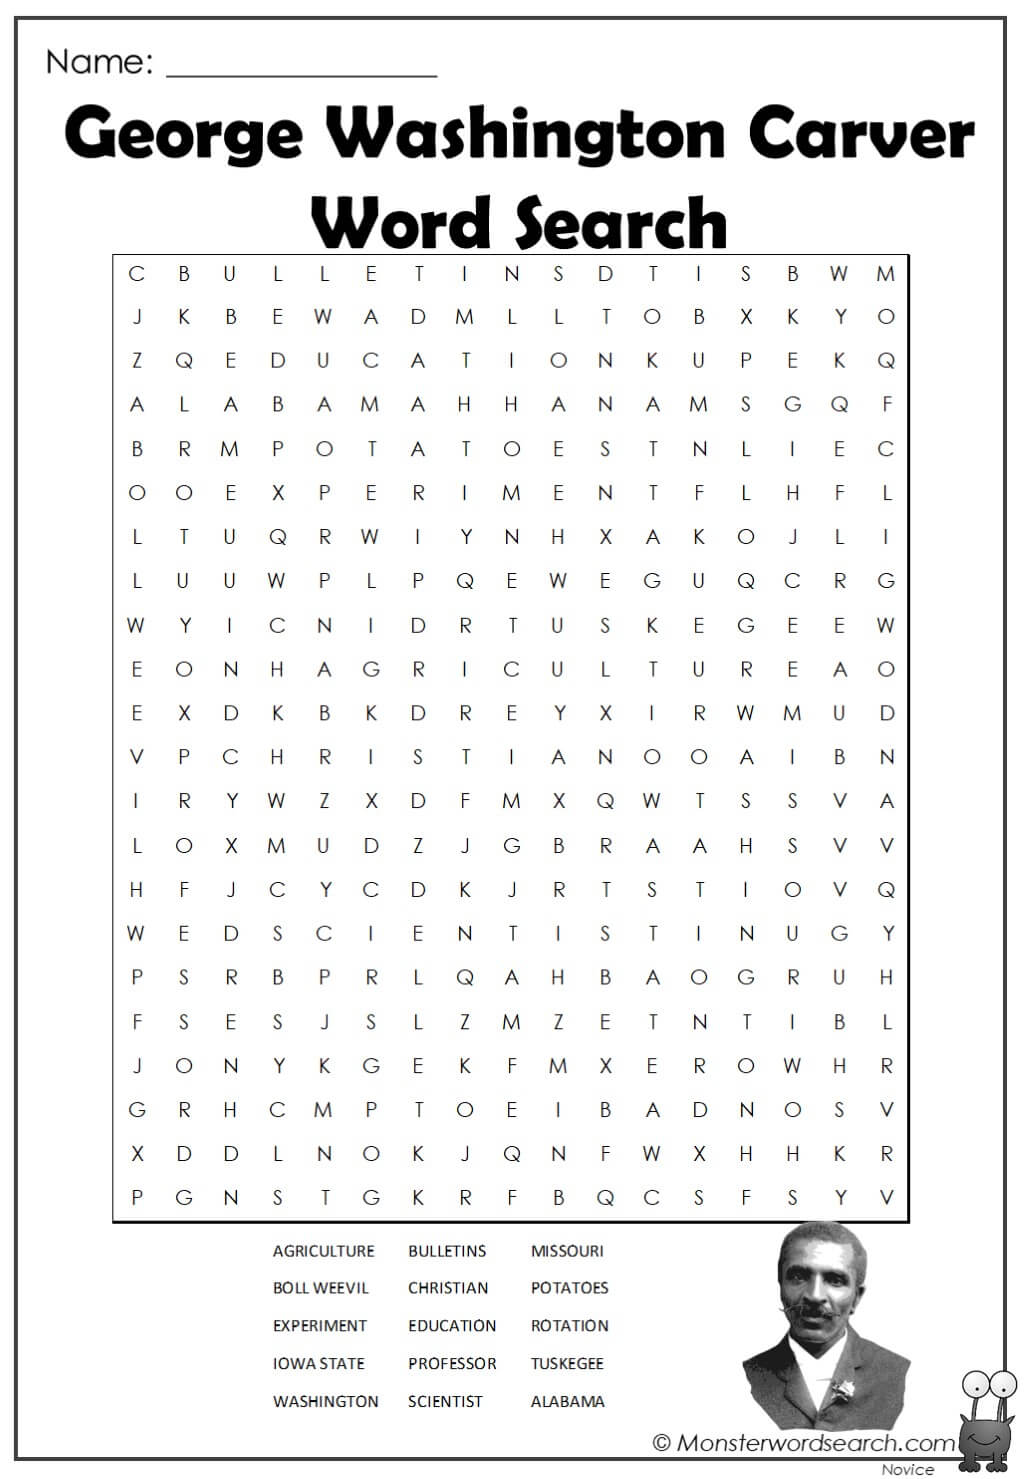 George Washington Carver Word Search 1